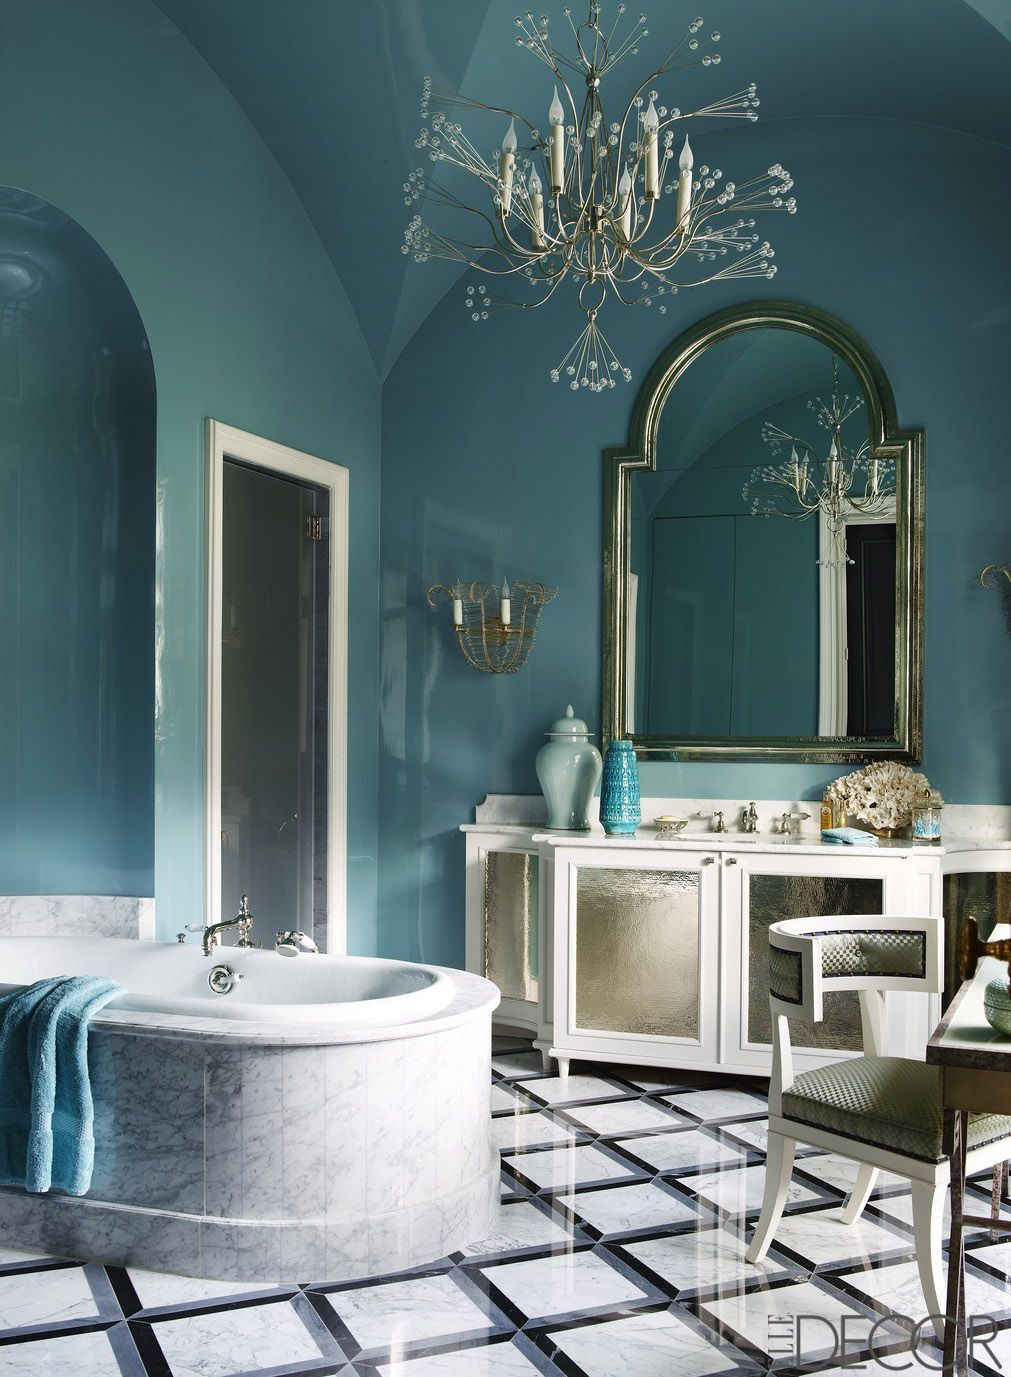 22 Best Bathroom Paint Colors - Top Designers' Ideal Wall Paint Hues for Bathrooms